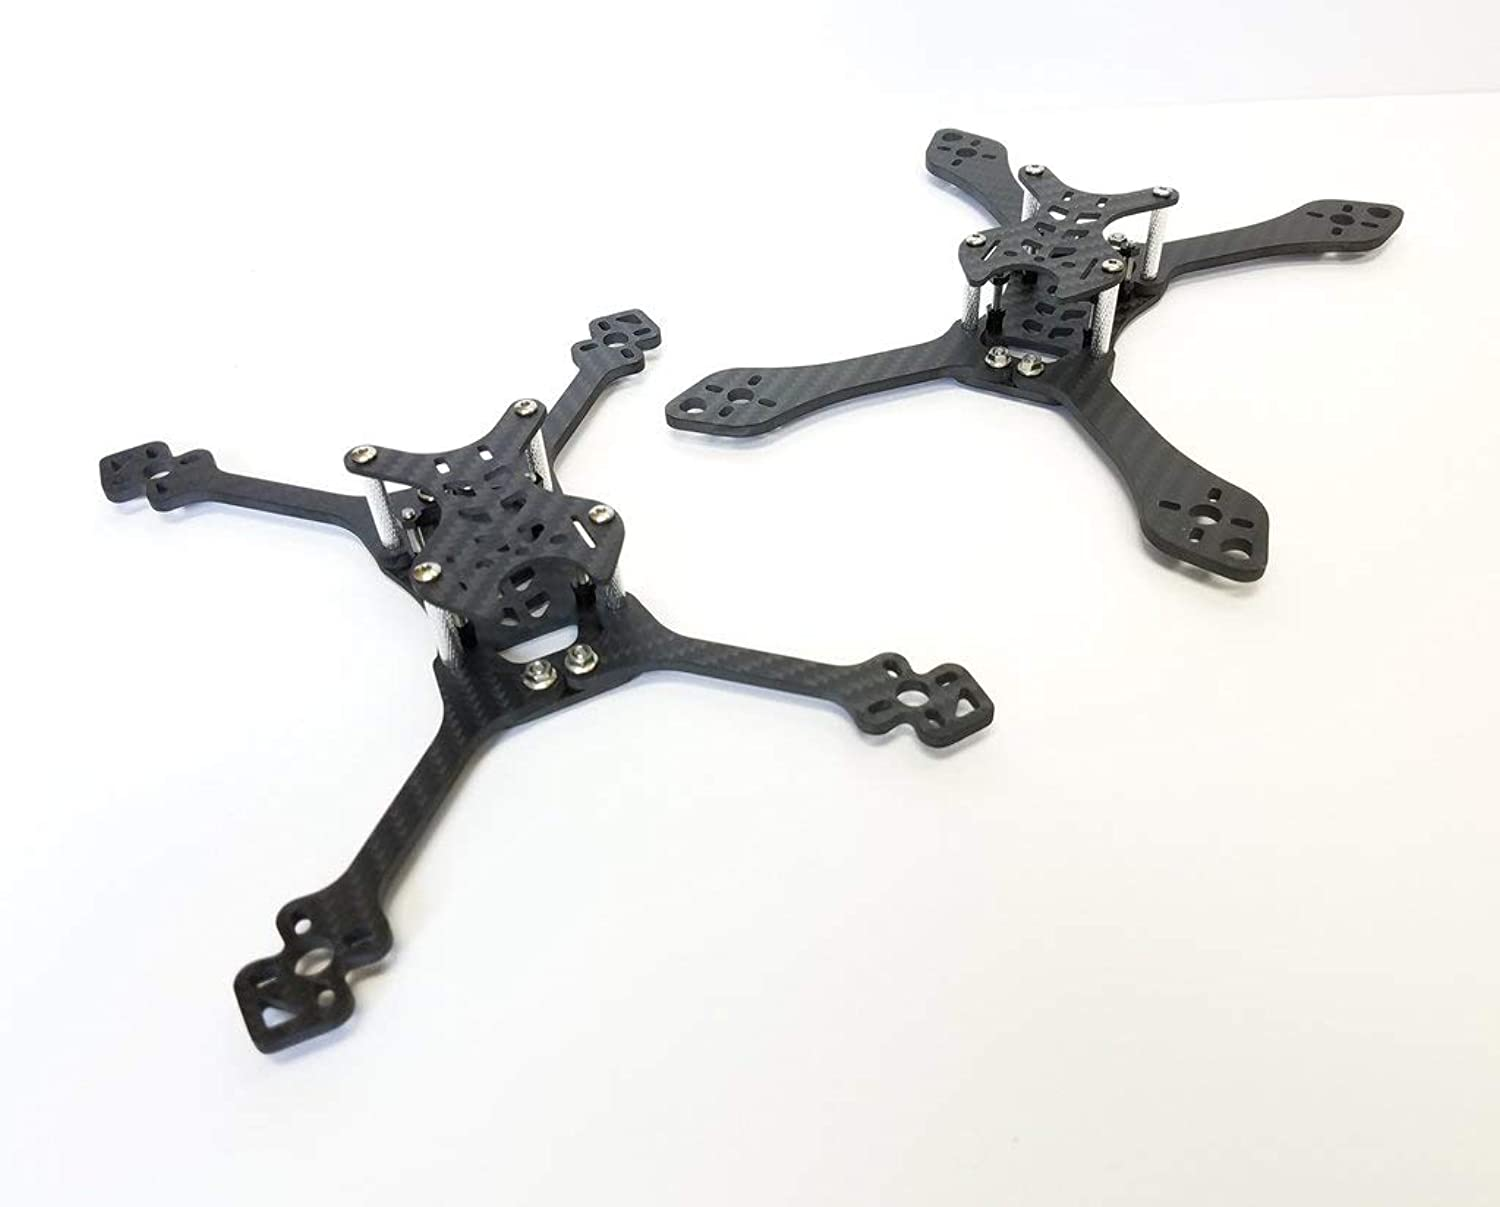 Mach 1 Stretch X Frame by RDQ 5 Inch MulitGP Spec Class Race 8mm Wide FPV Racer, Copter, Drones CopterFarm